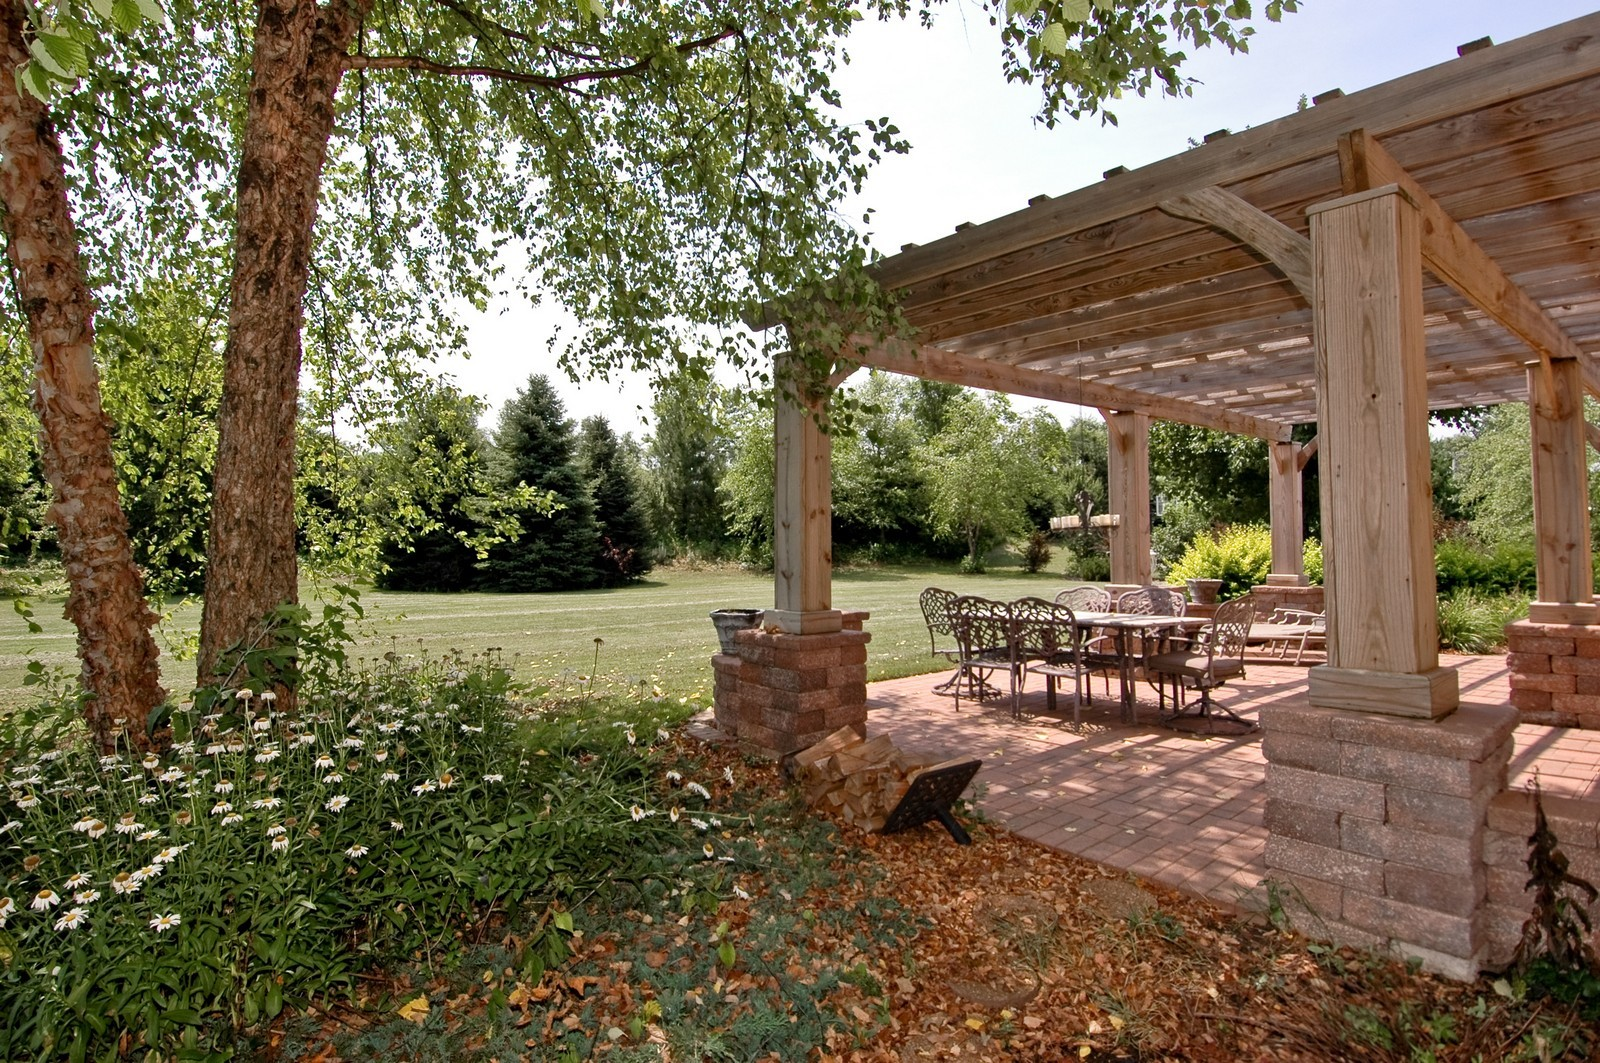 Real Estate Photography - 4215 Alex, Crystal Lake, IL, 60014 - Location 1